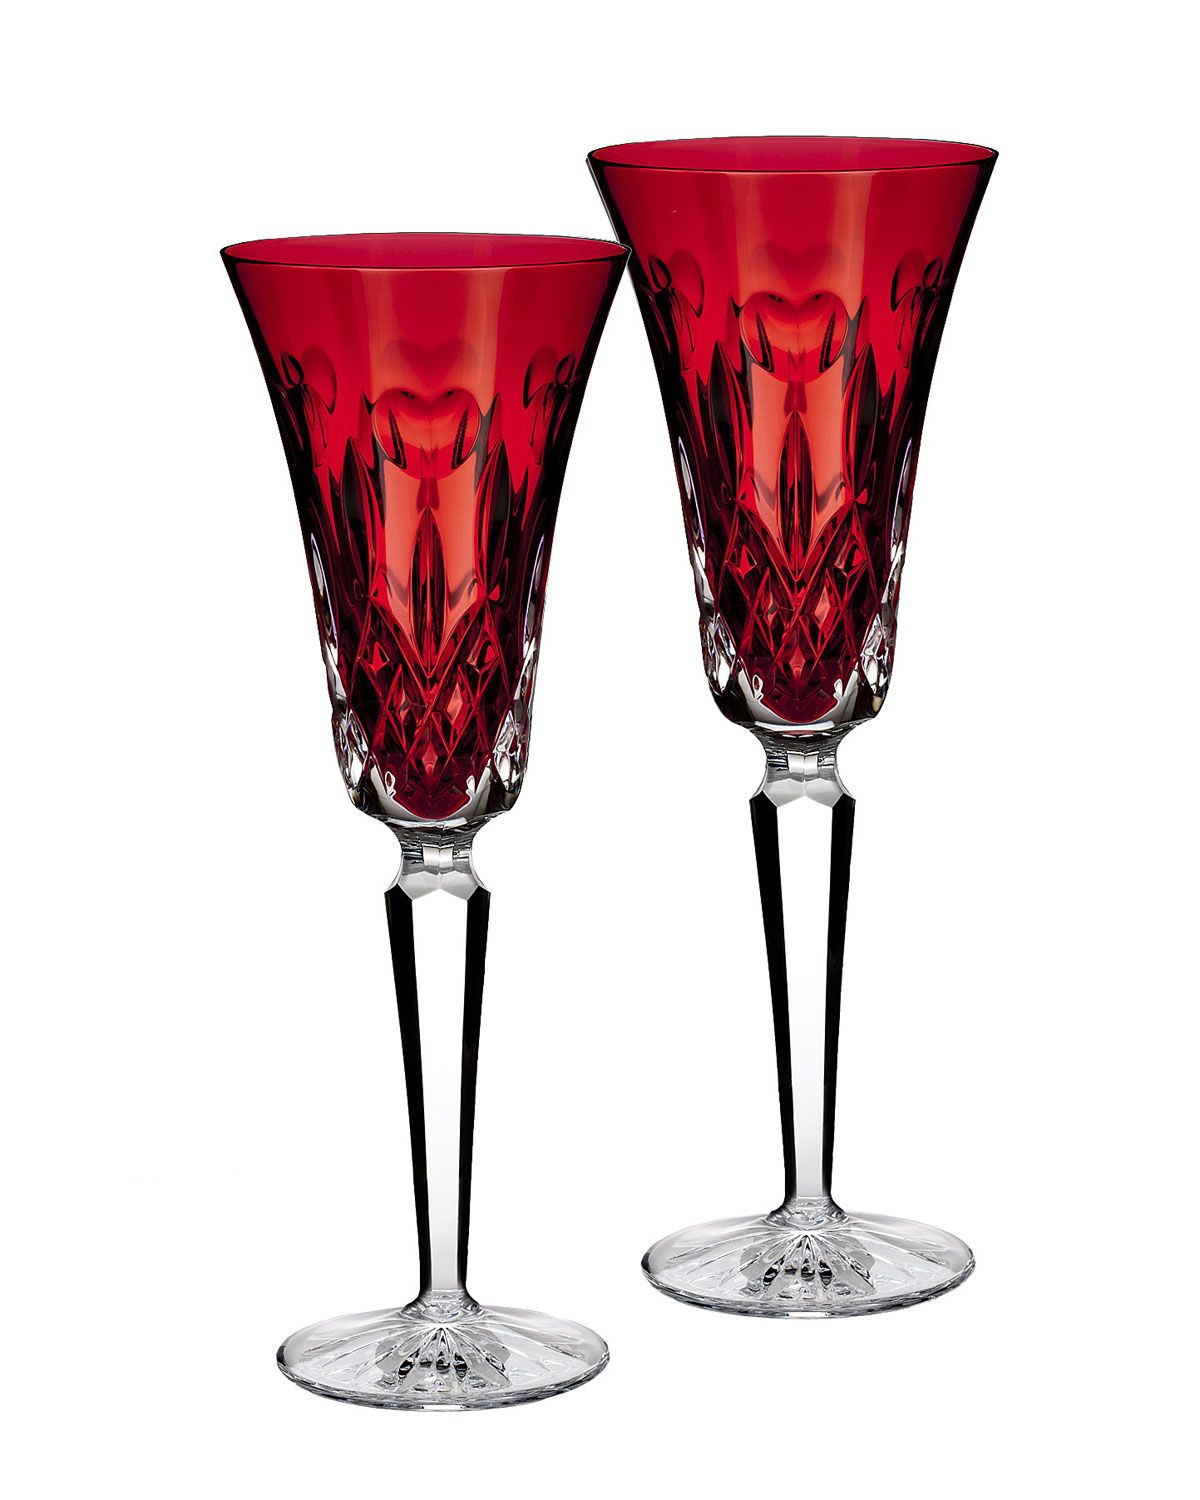 Waterford Two I Love Lismore Red Flutes Horchow Crystal Glassware Glass Glassware